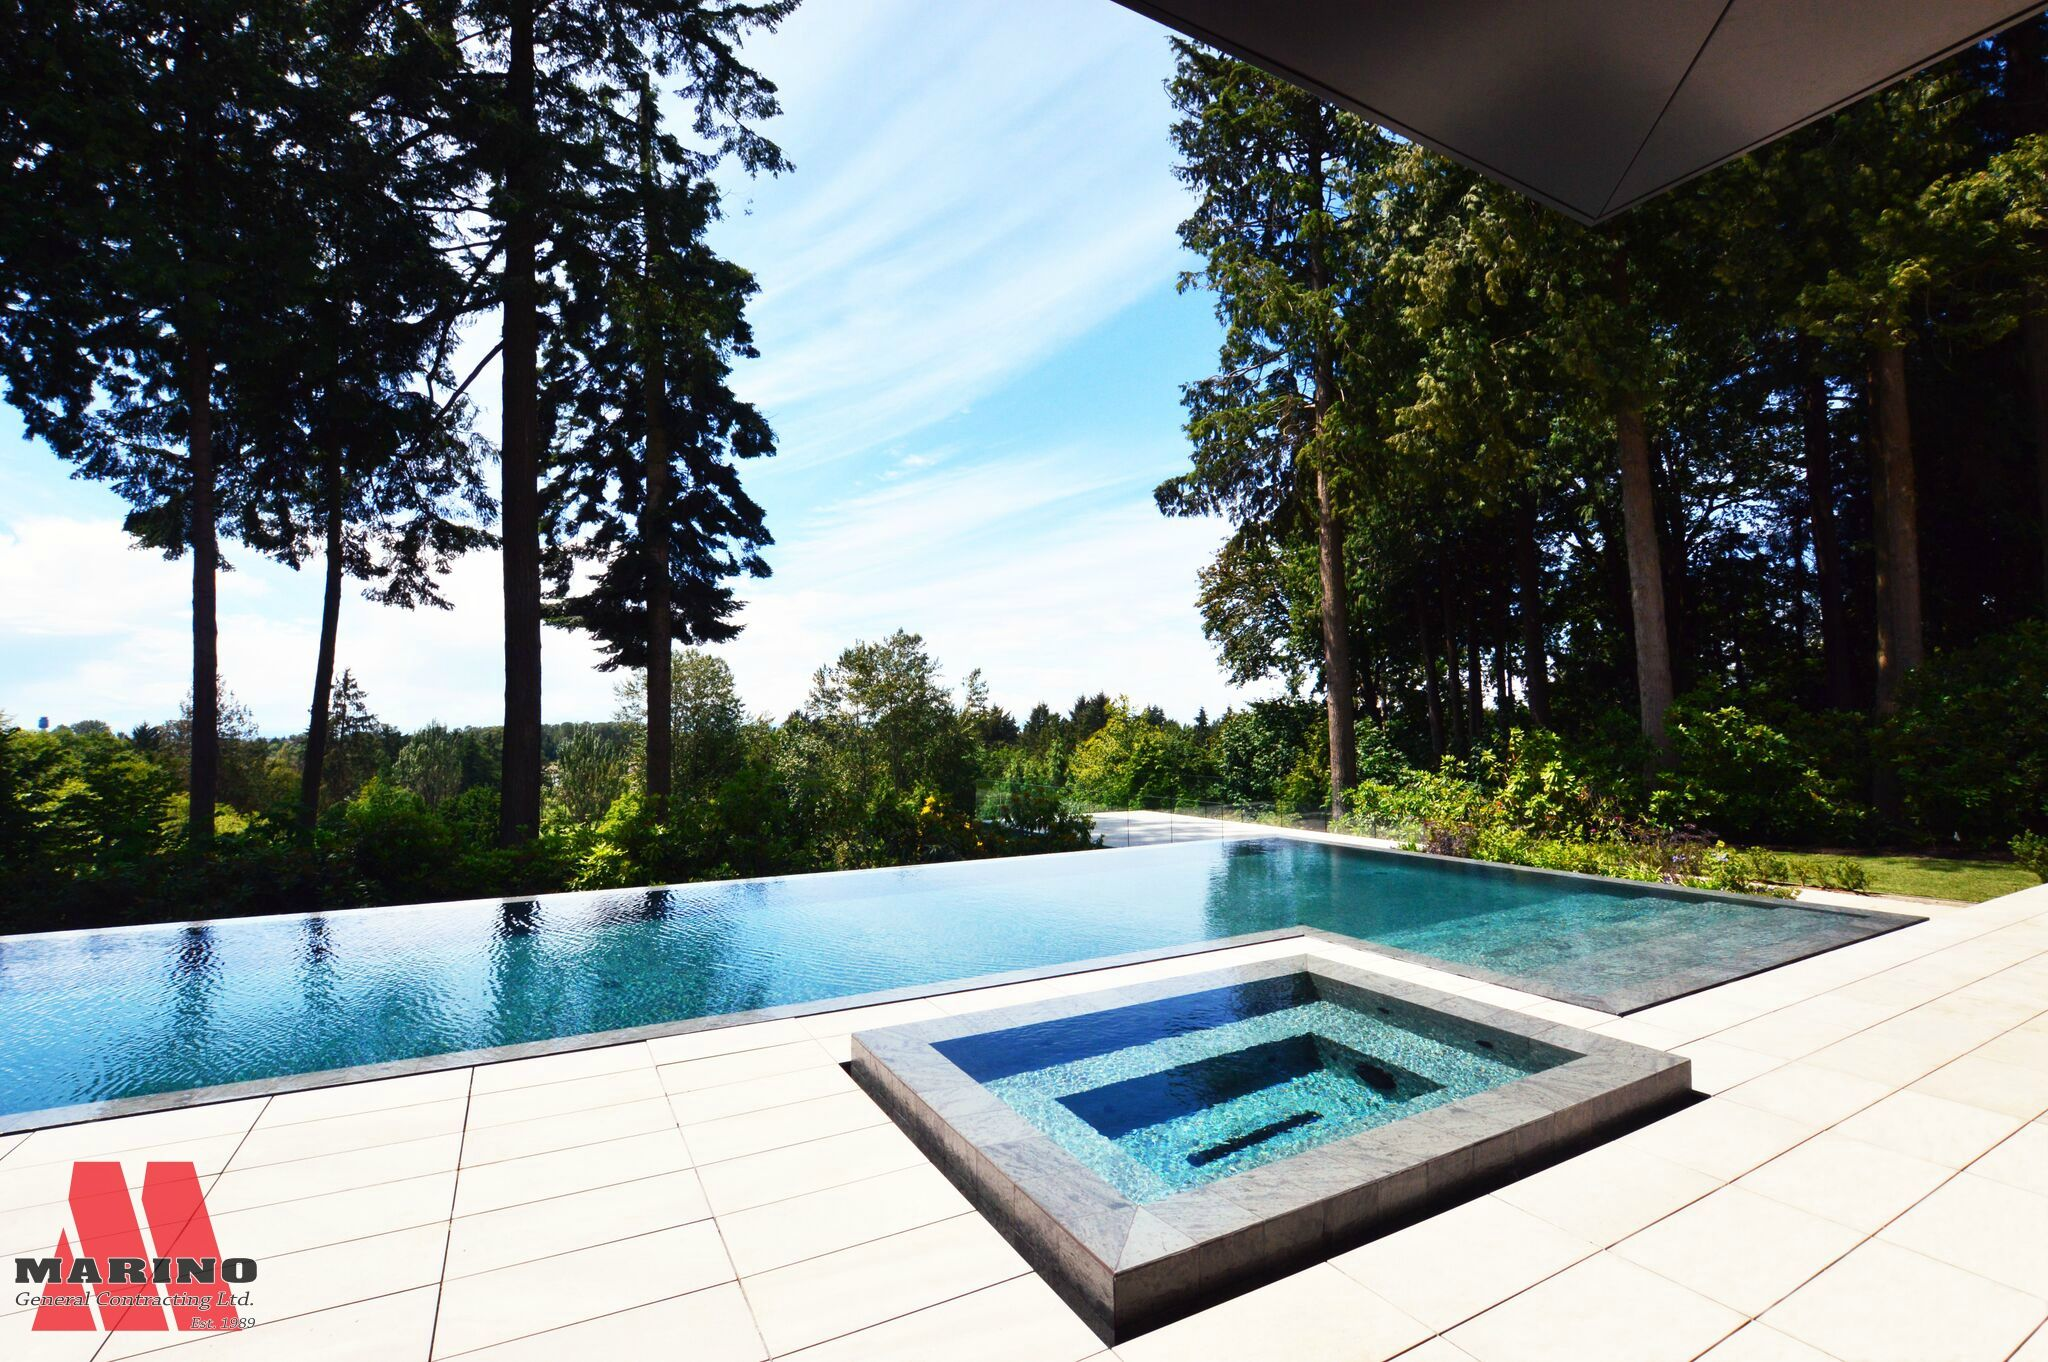 Pool And Jacuzzi Infinity Edge Pool And Jacuzzi Indoor Outdoor Living Pinterest